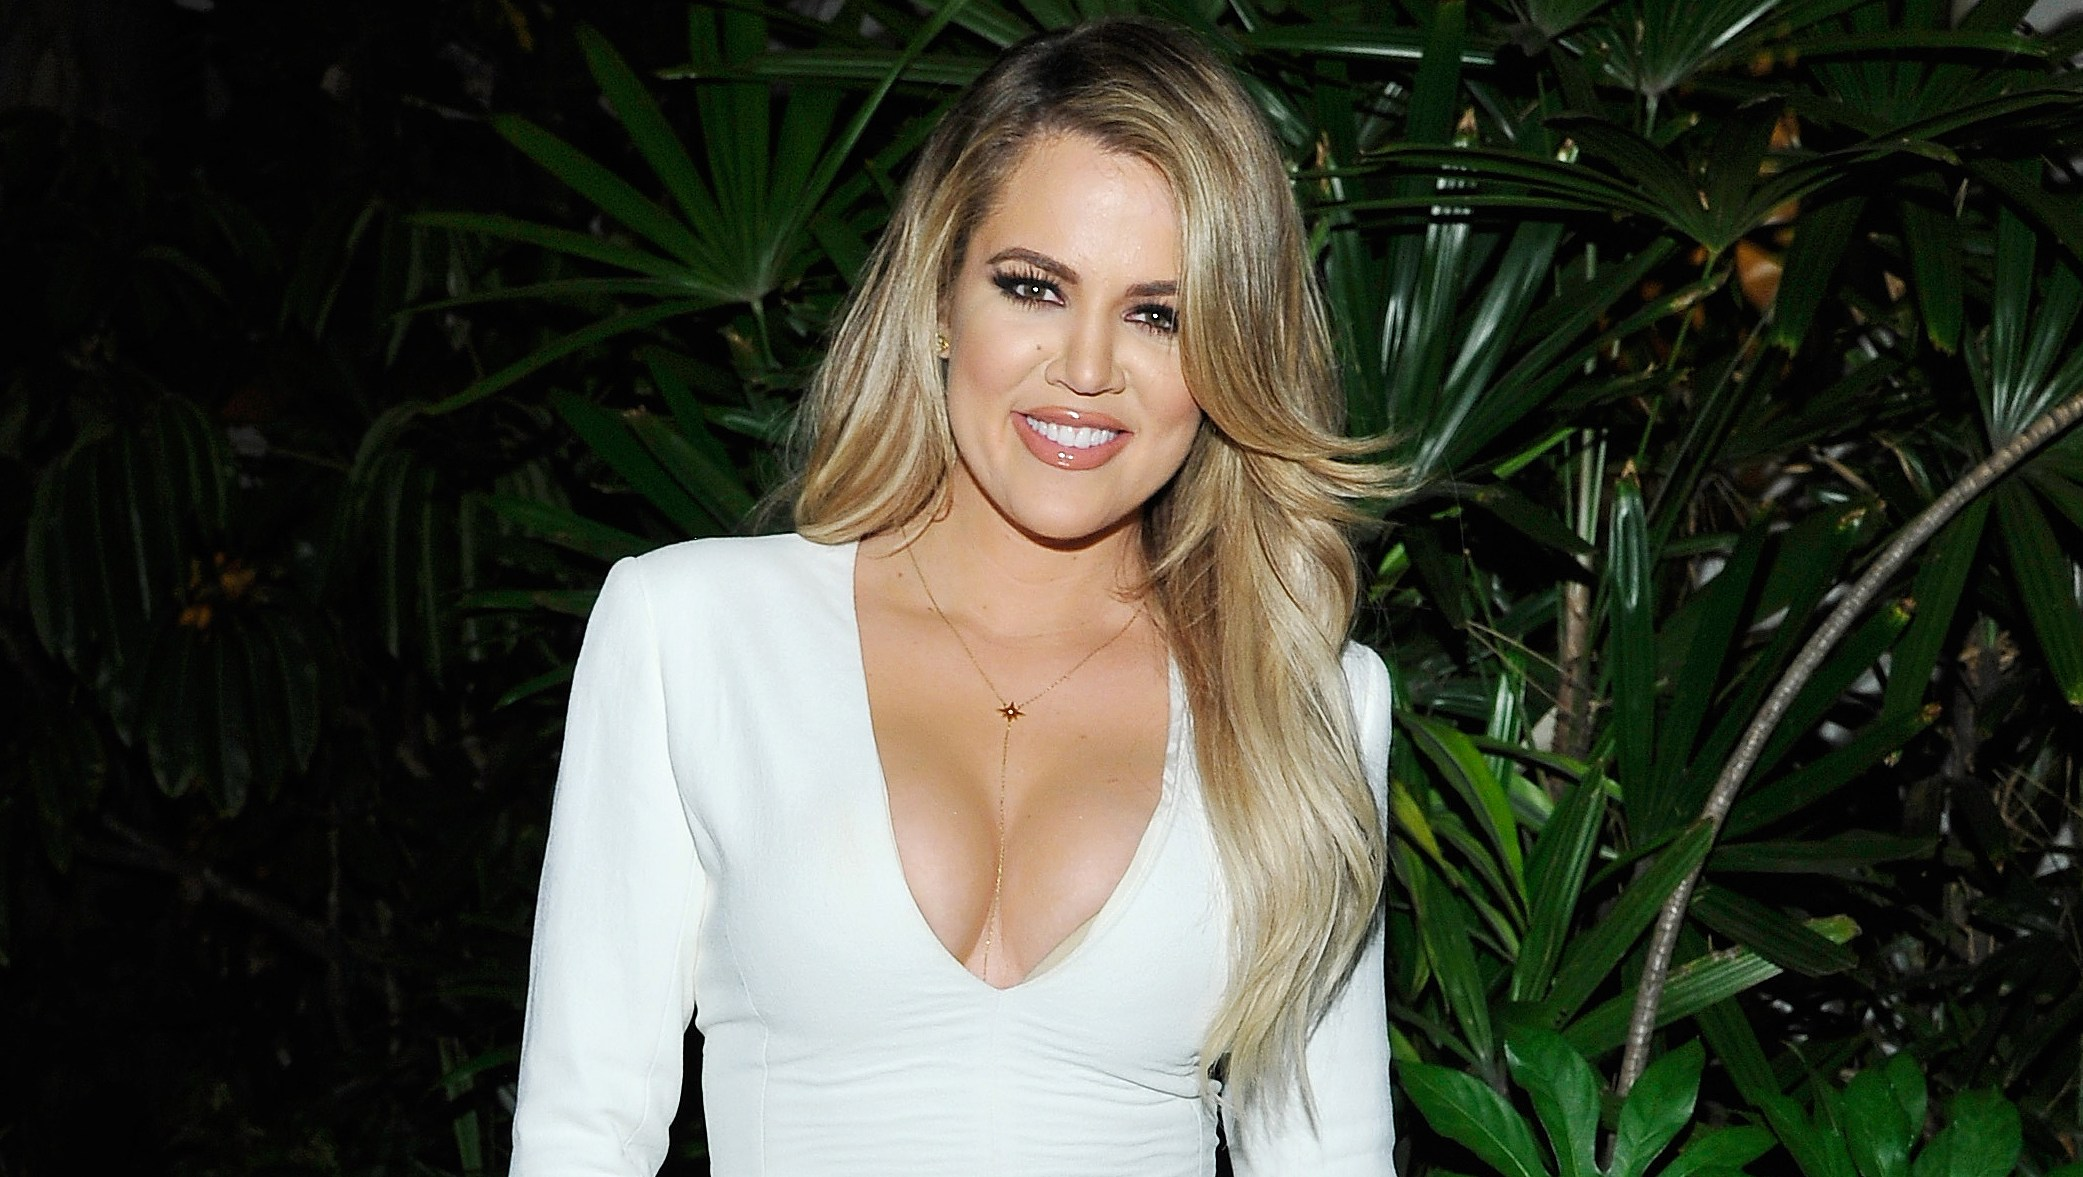 Khloe Kardashian Posts Message About Doing 'What You Feel in Your Heart to Be Right'